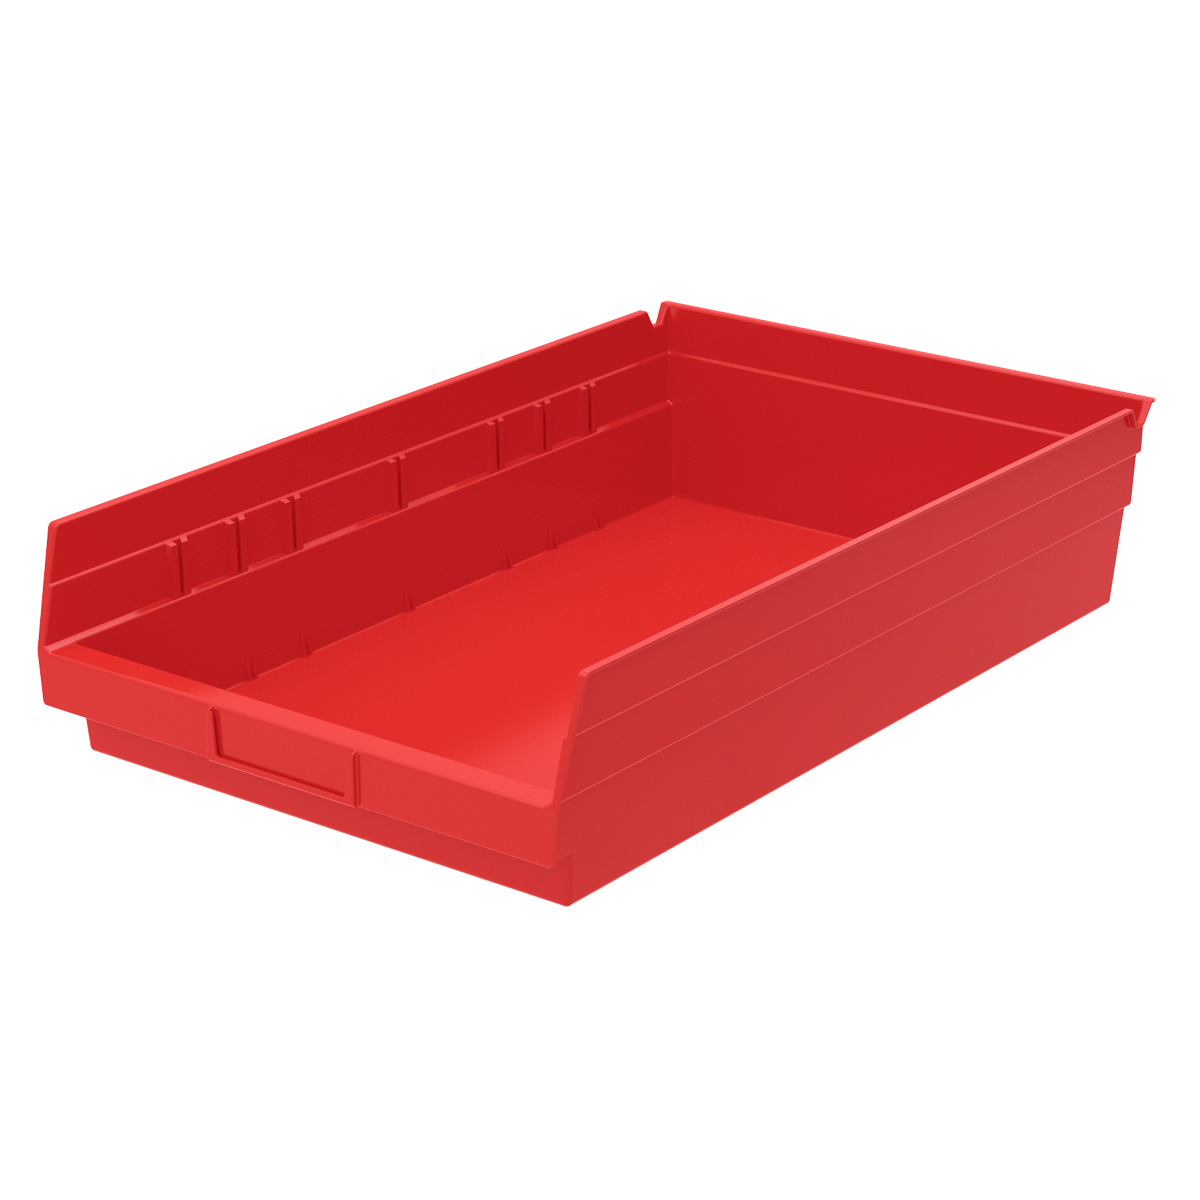 Shelf Bin 17-7/8 x 11-1/8 x 4, Red (30178RED).  This item sold in carton quantities of 12.